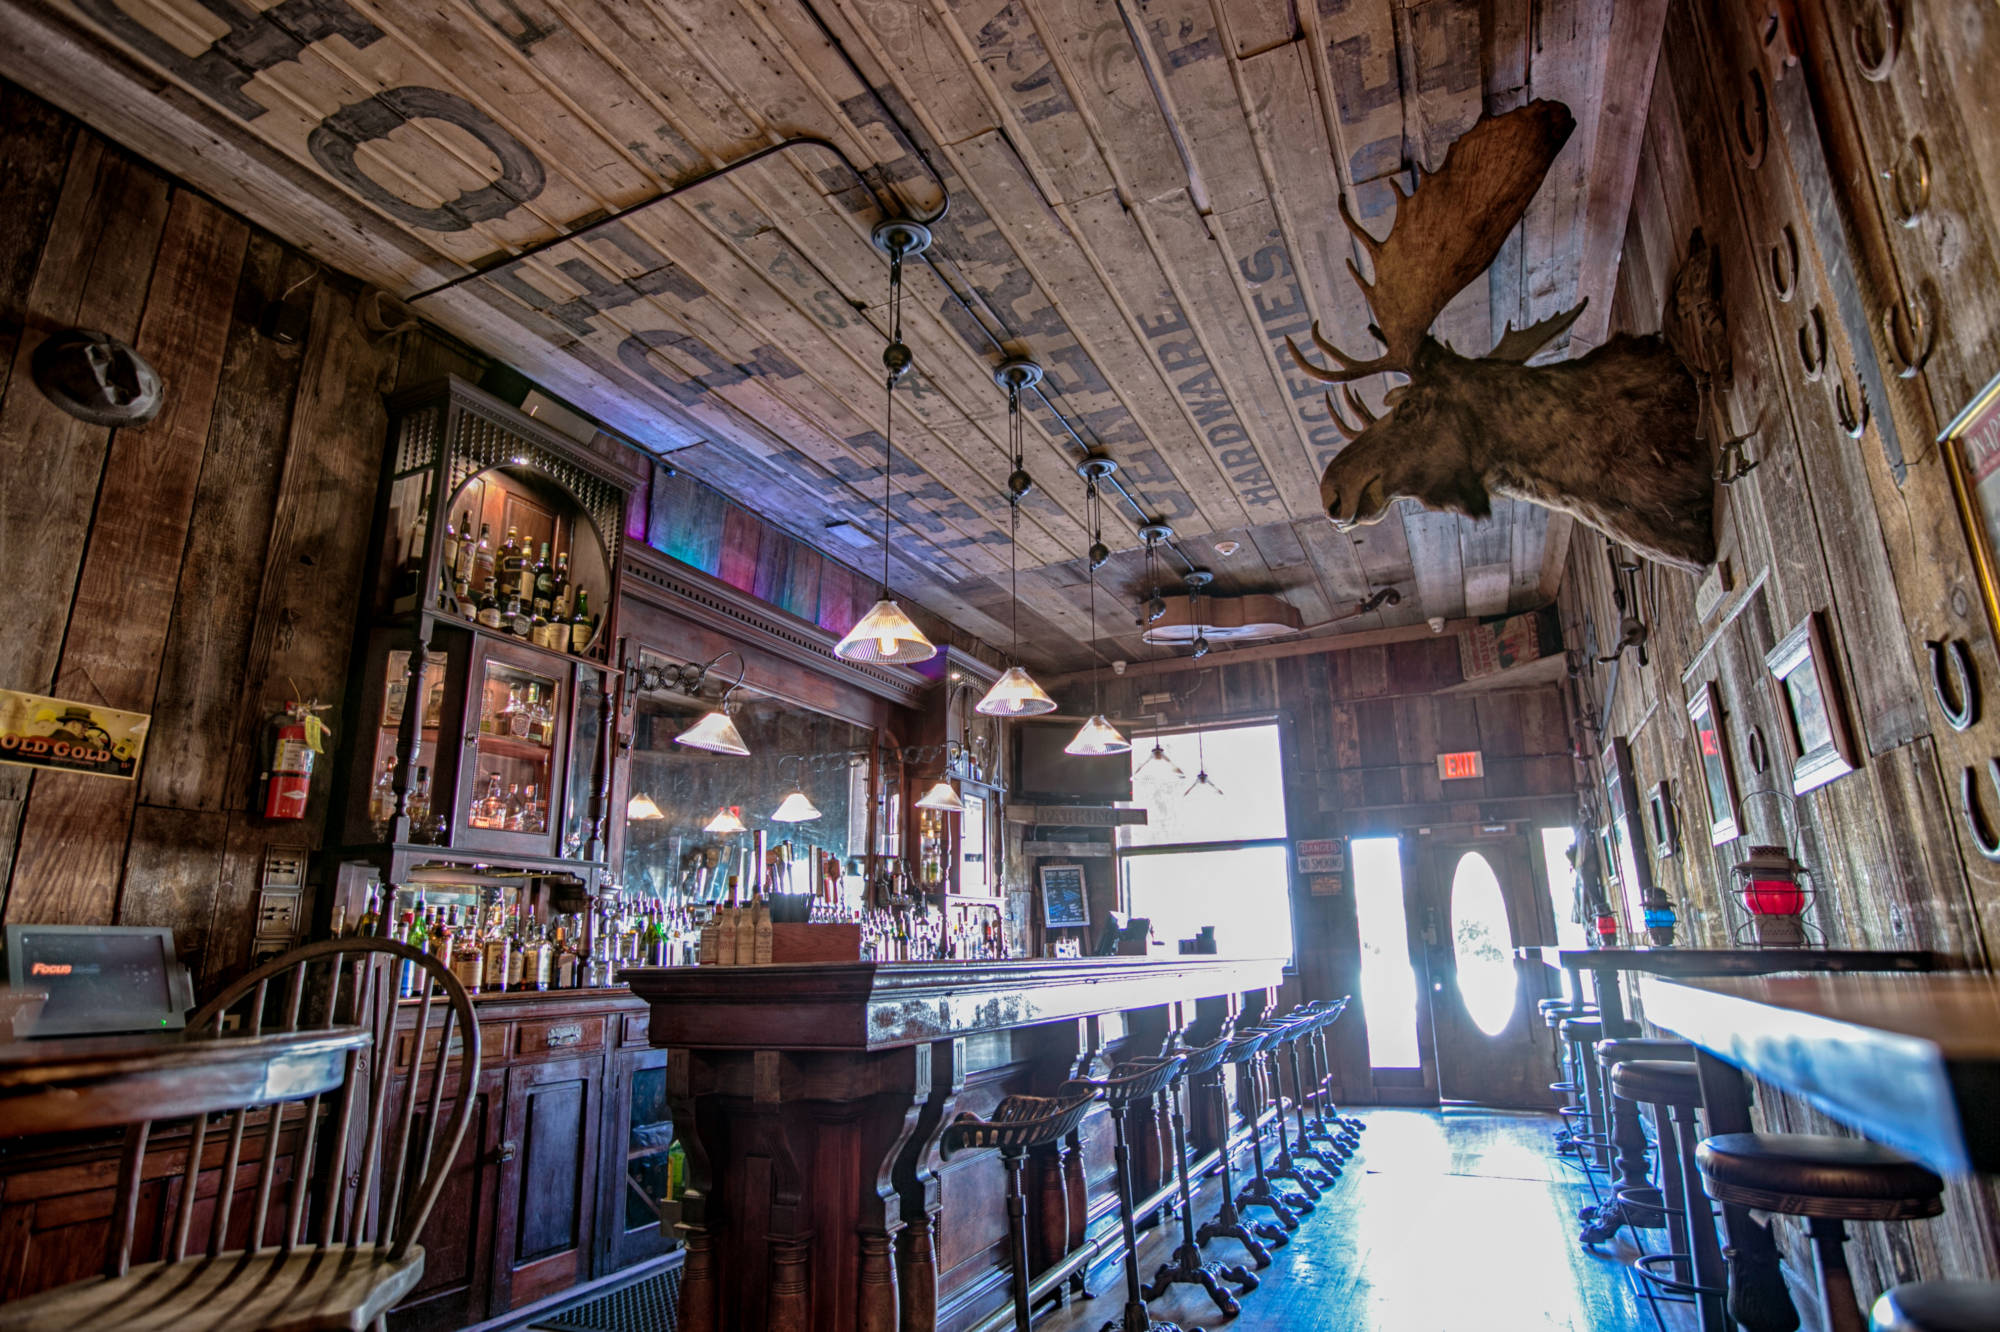 1880 Saloon - Sid the Moose